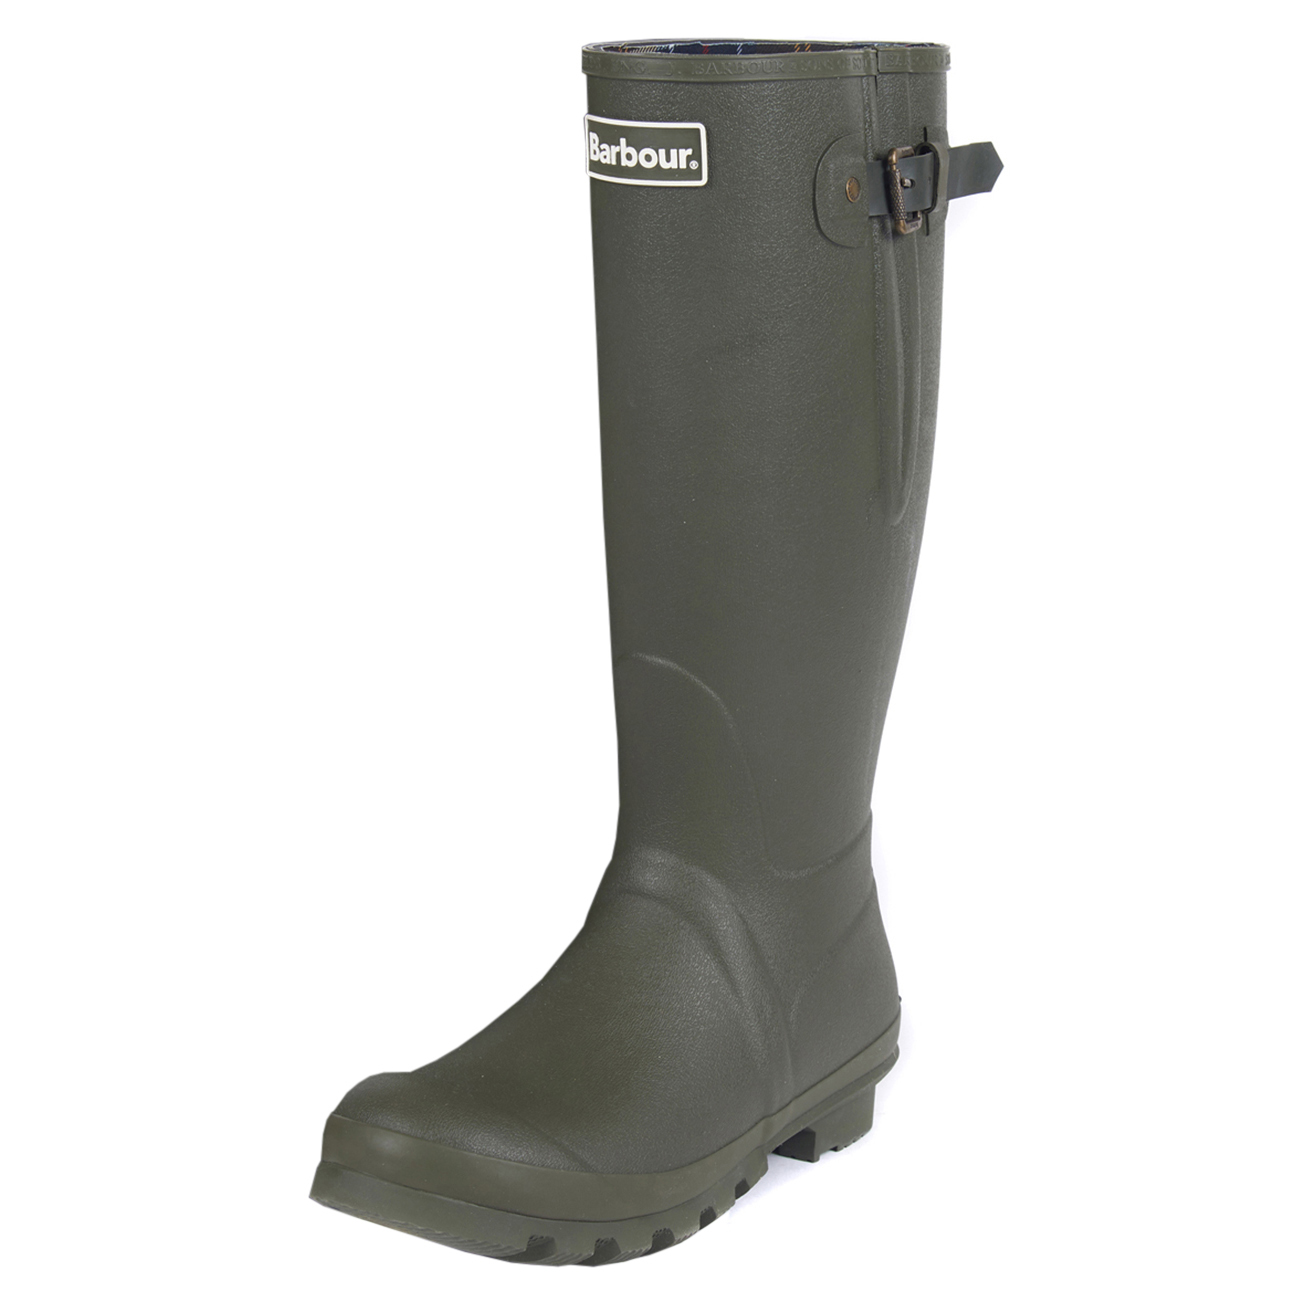 Mens-Barbour-Amble-Muck-Stable-Winter-Rain-Mud-Snow-Durable-Flat-Boots-All-Sizes miniatuur 24